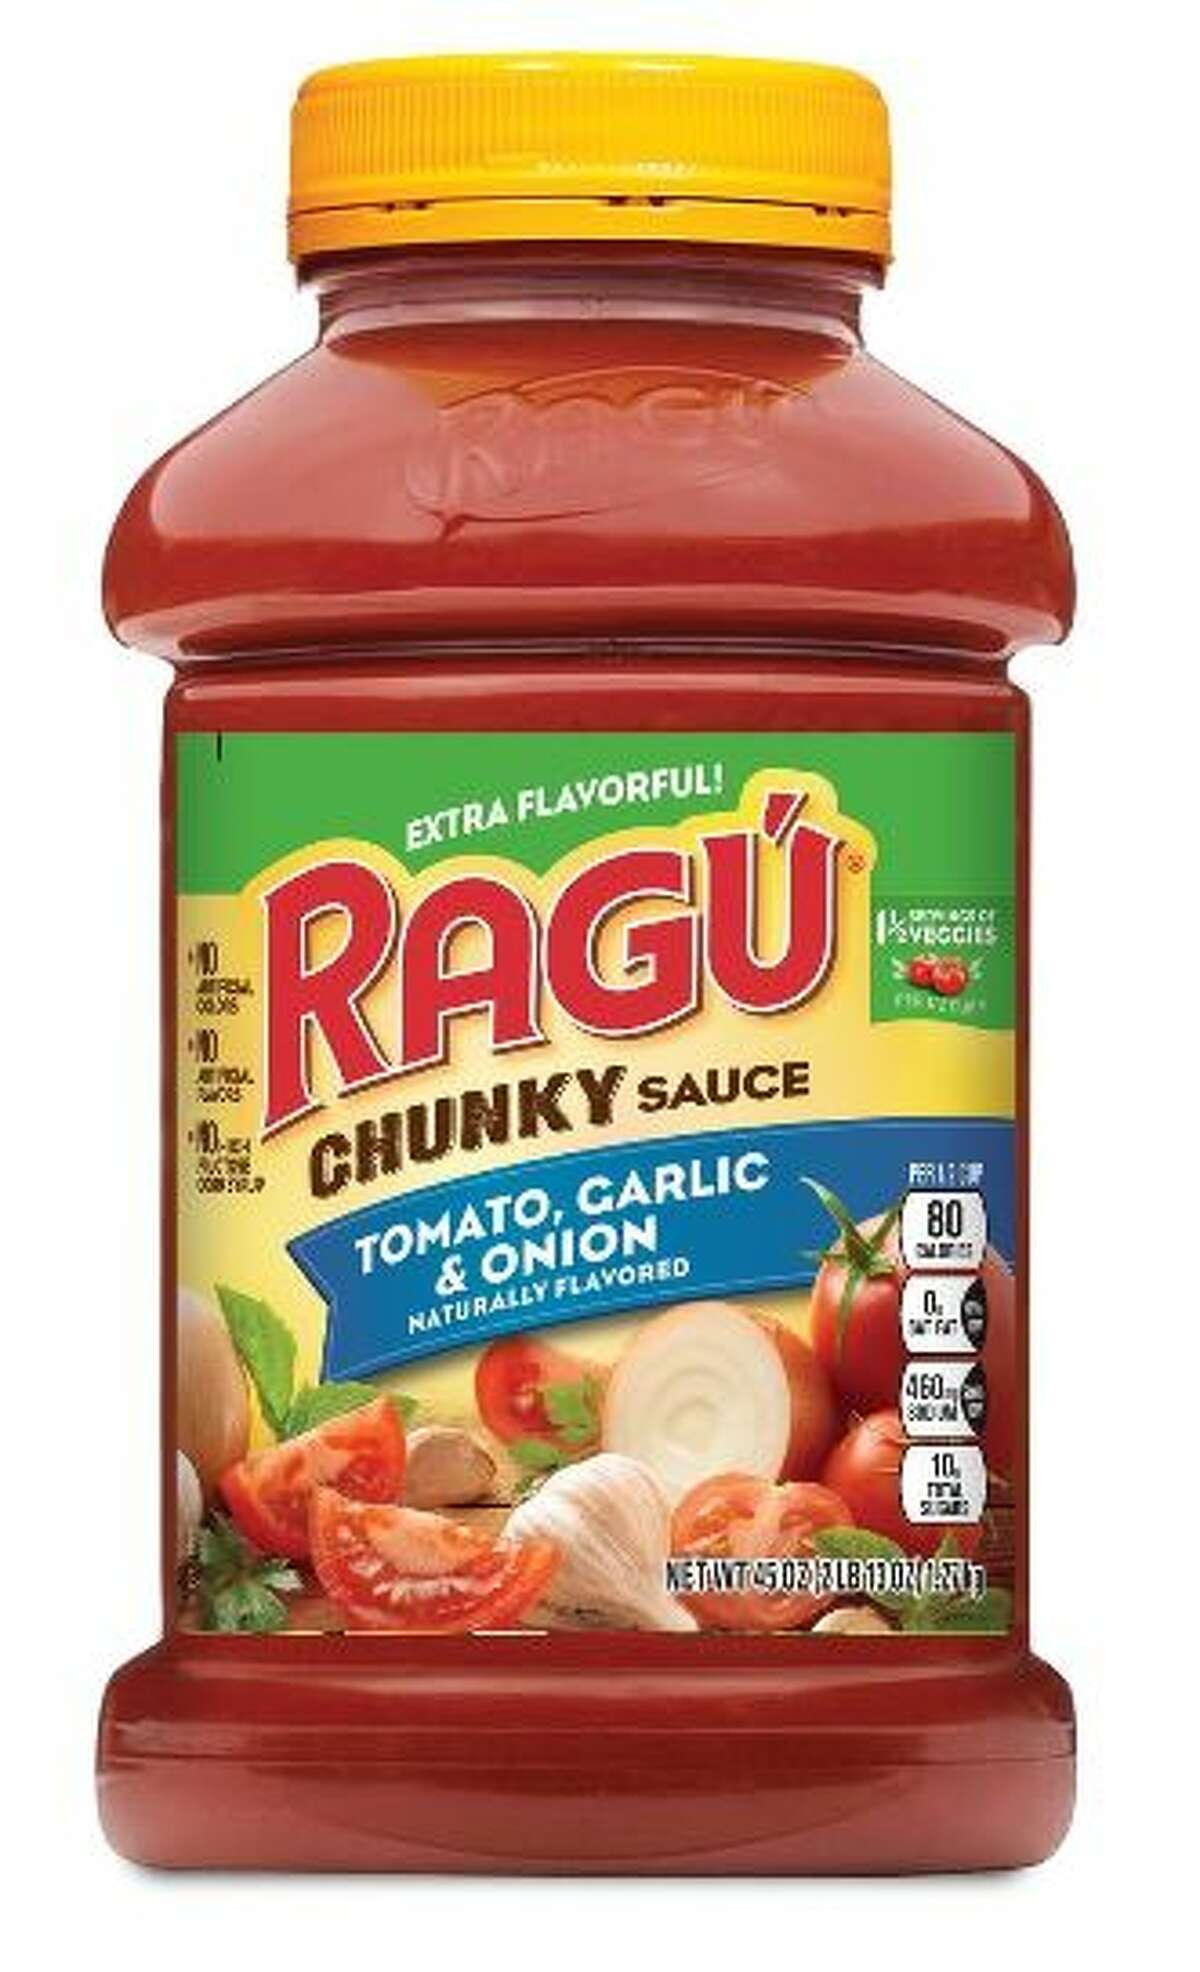 Mizkan America is recalling certain jars of Ragú pasta sauces because they may contain bits of plastic. The products were shipped to retailers nationwide, Mizkan America said in a news release.